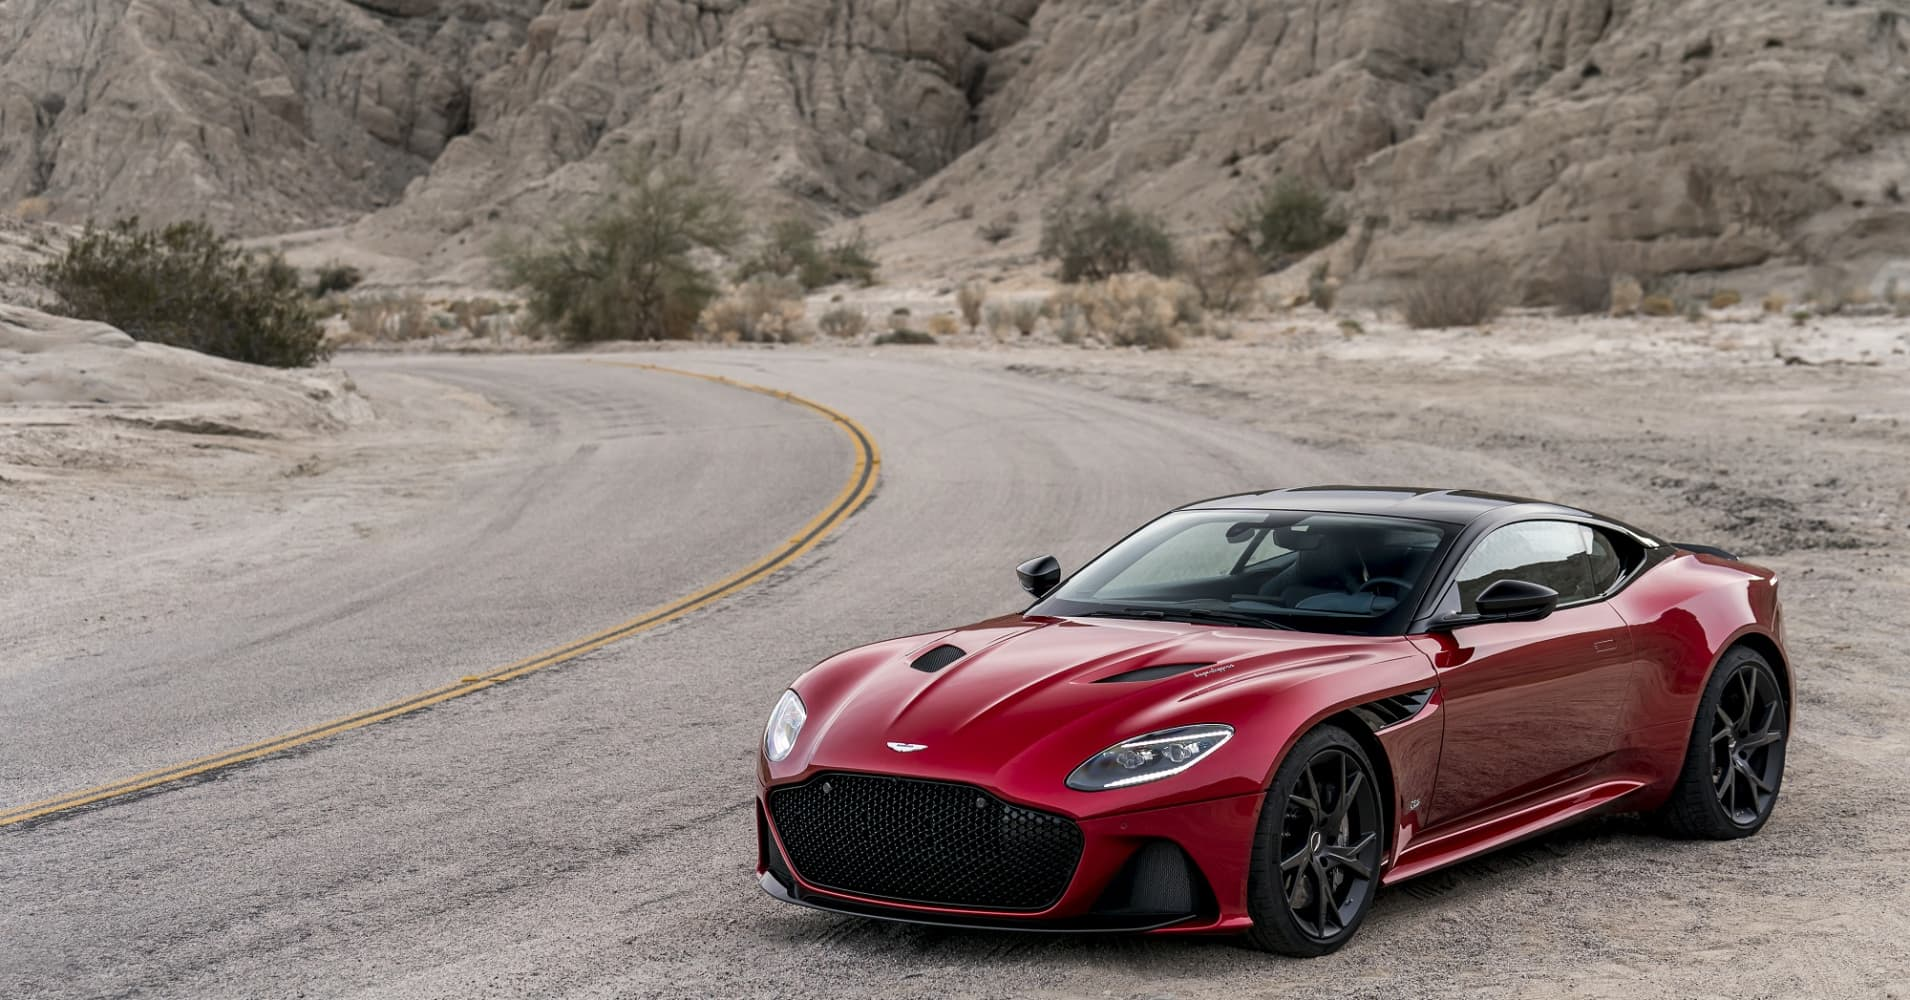 Photos New Aston Martin DBS Superleggera Supercar - How many aston martin dbs were made